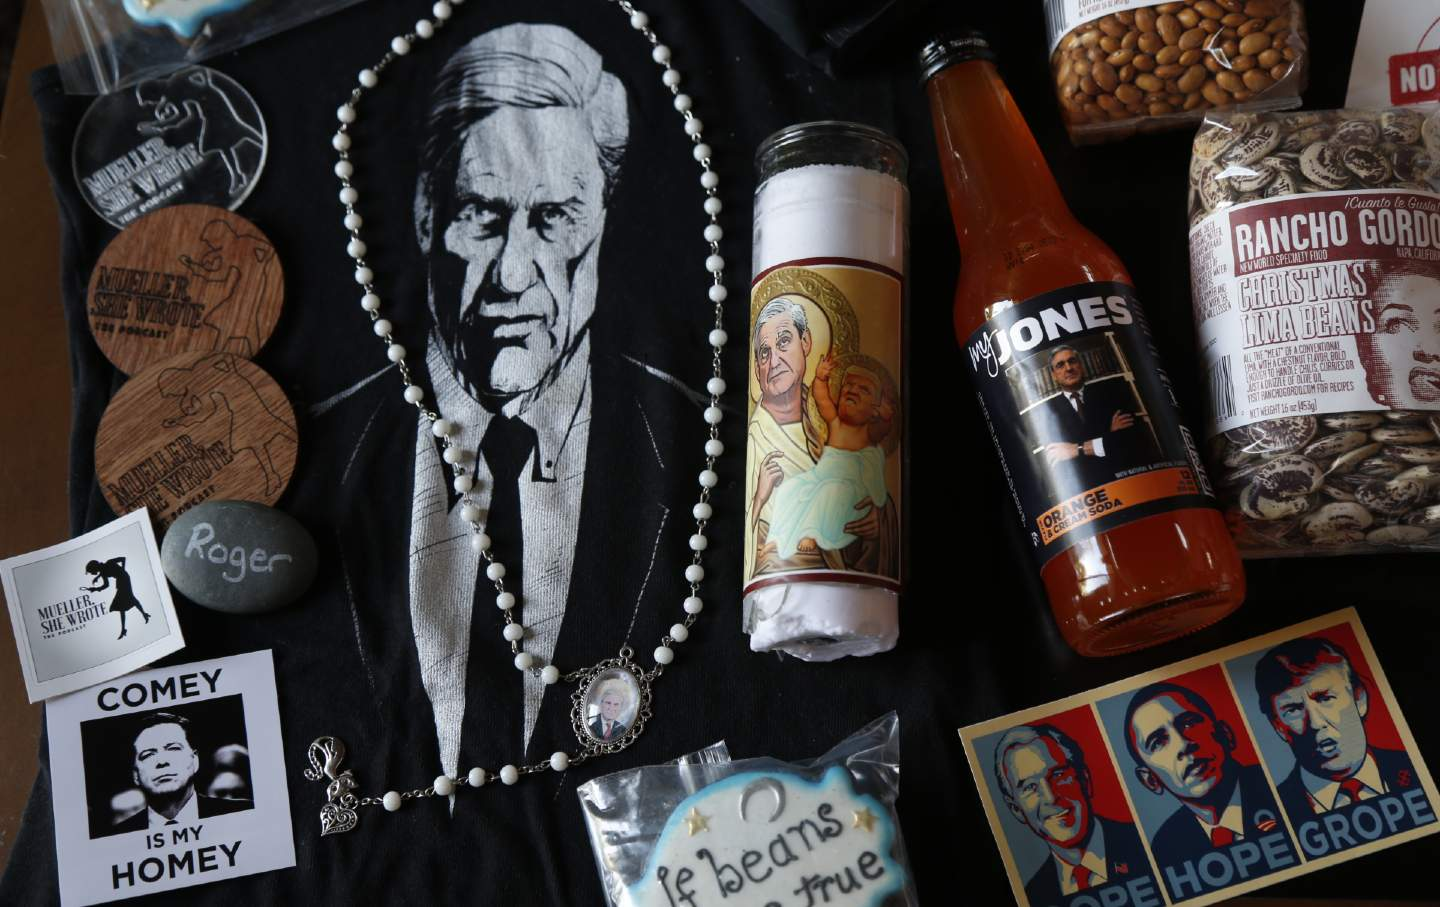 A collection of gift items with Robert Mueller's face on them, including a necklace, a candle, and a poster.